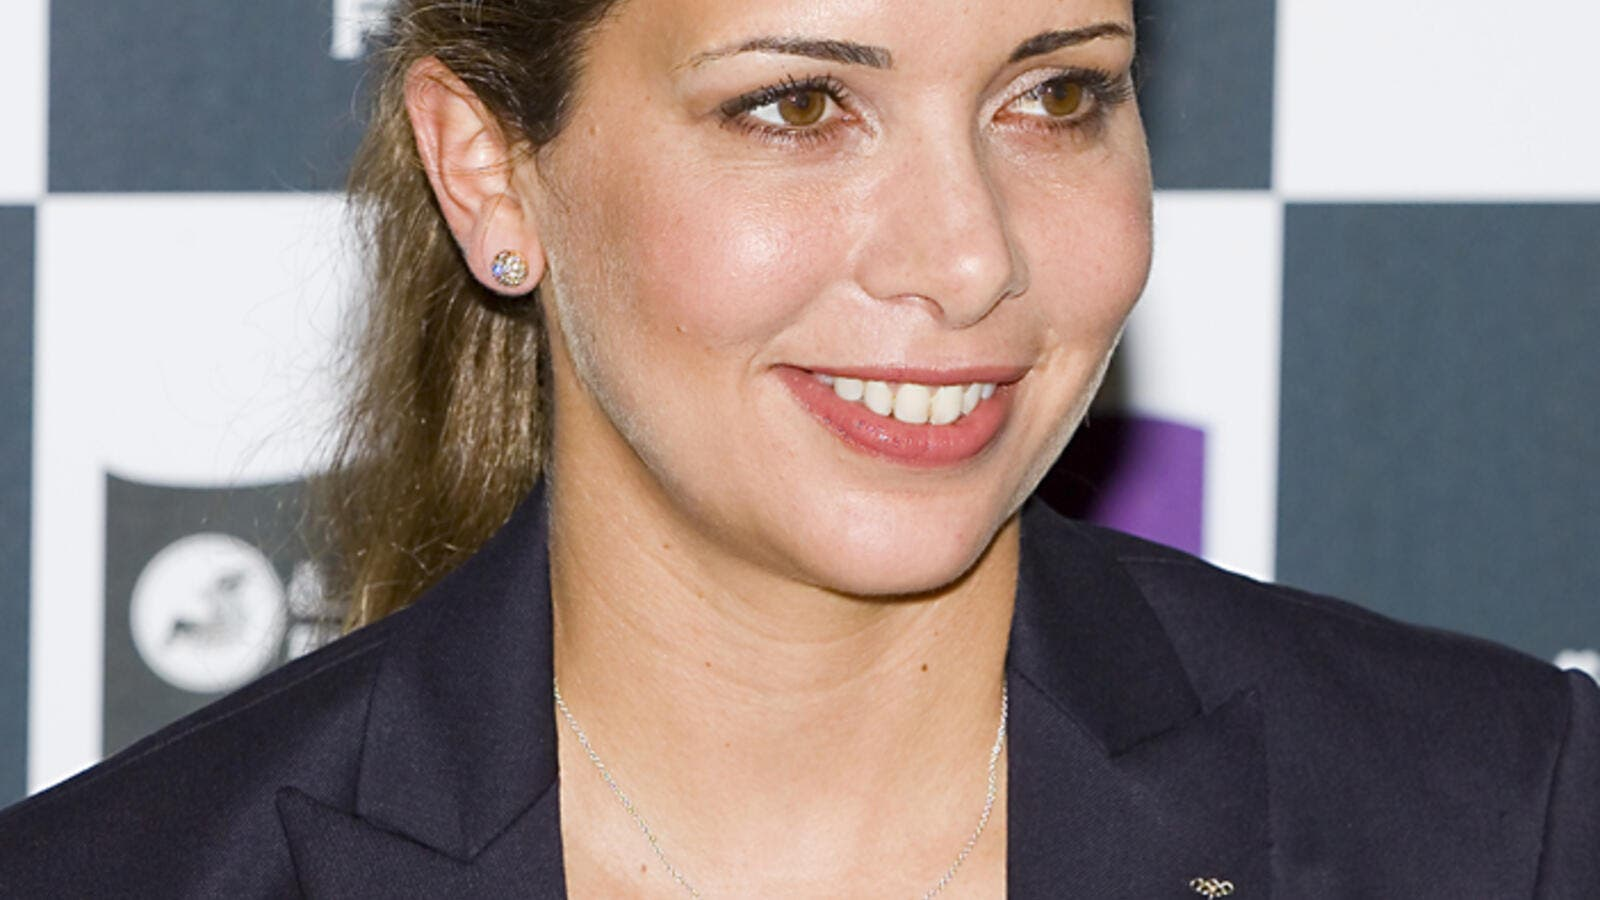 Princess Haya Bint Al Hussein is daughter of His Majesty King Hussein of Jordan, who ruled the country until his passing in 1999, and is the half-sister of His Majesty King Abdullah II Ibn Al Hussein.